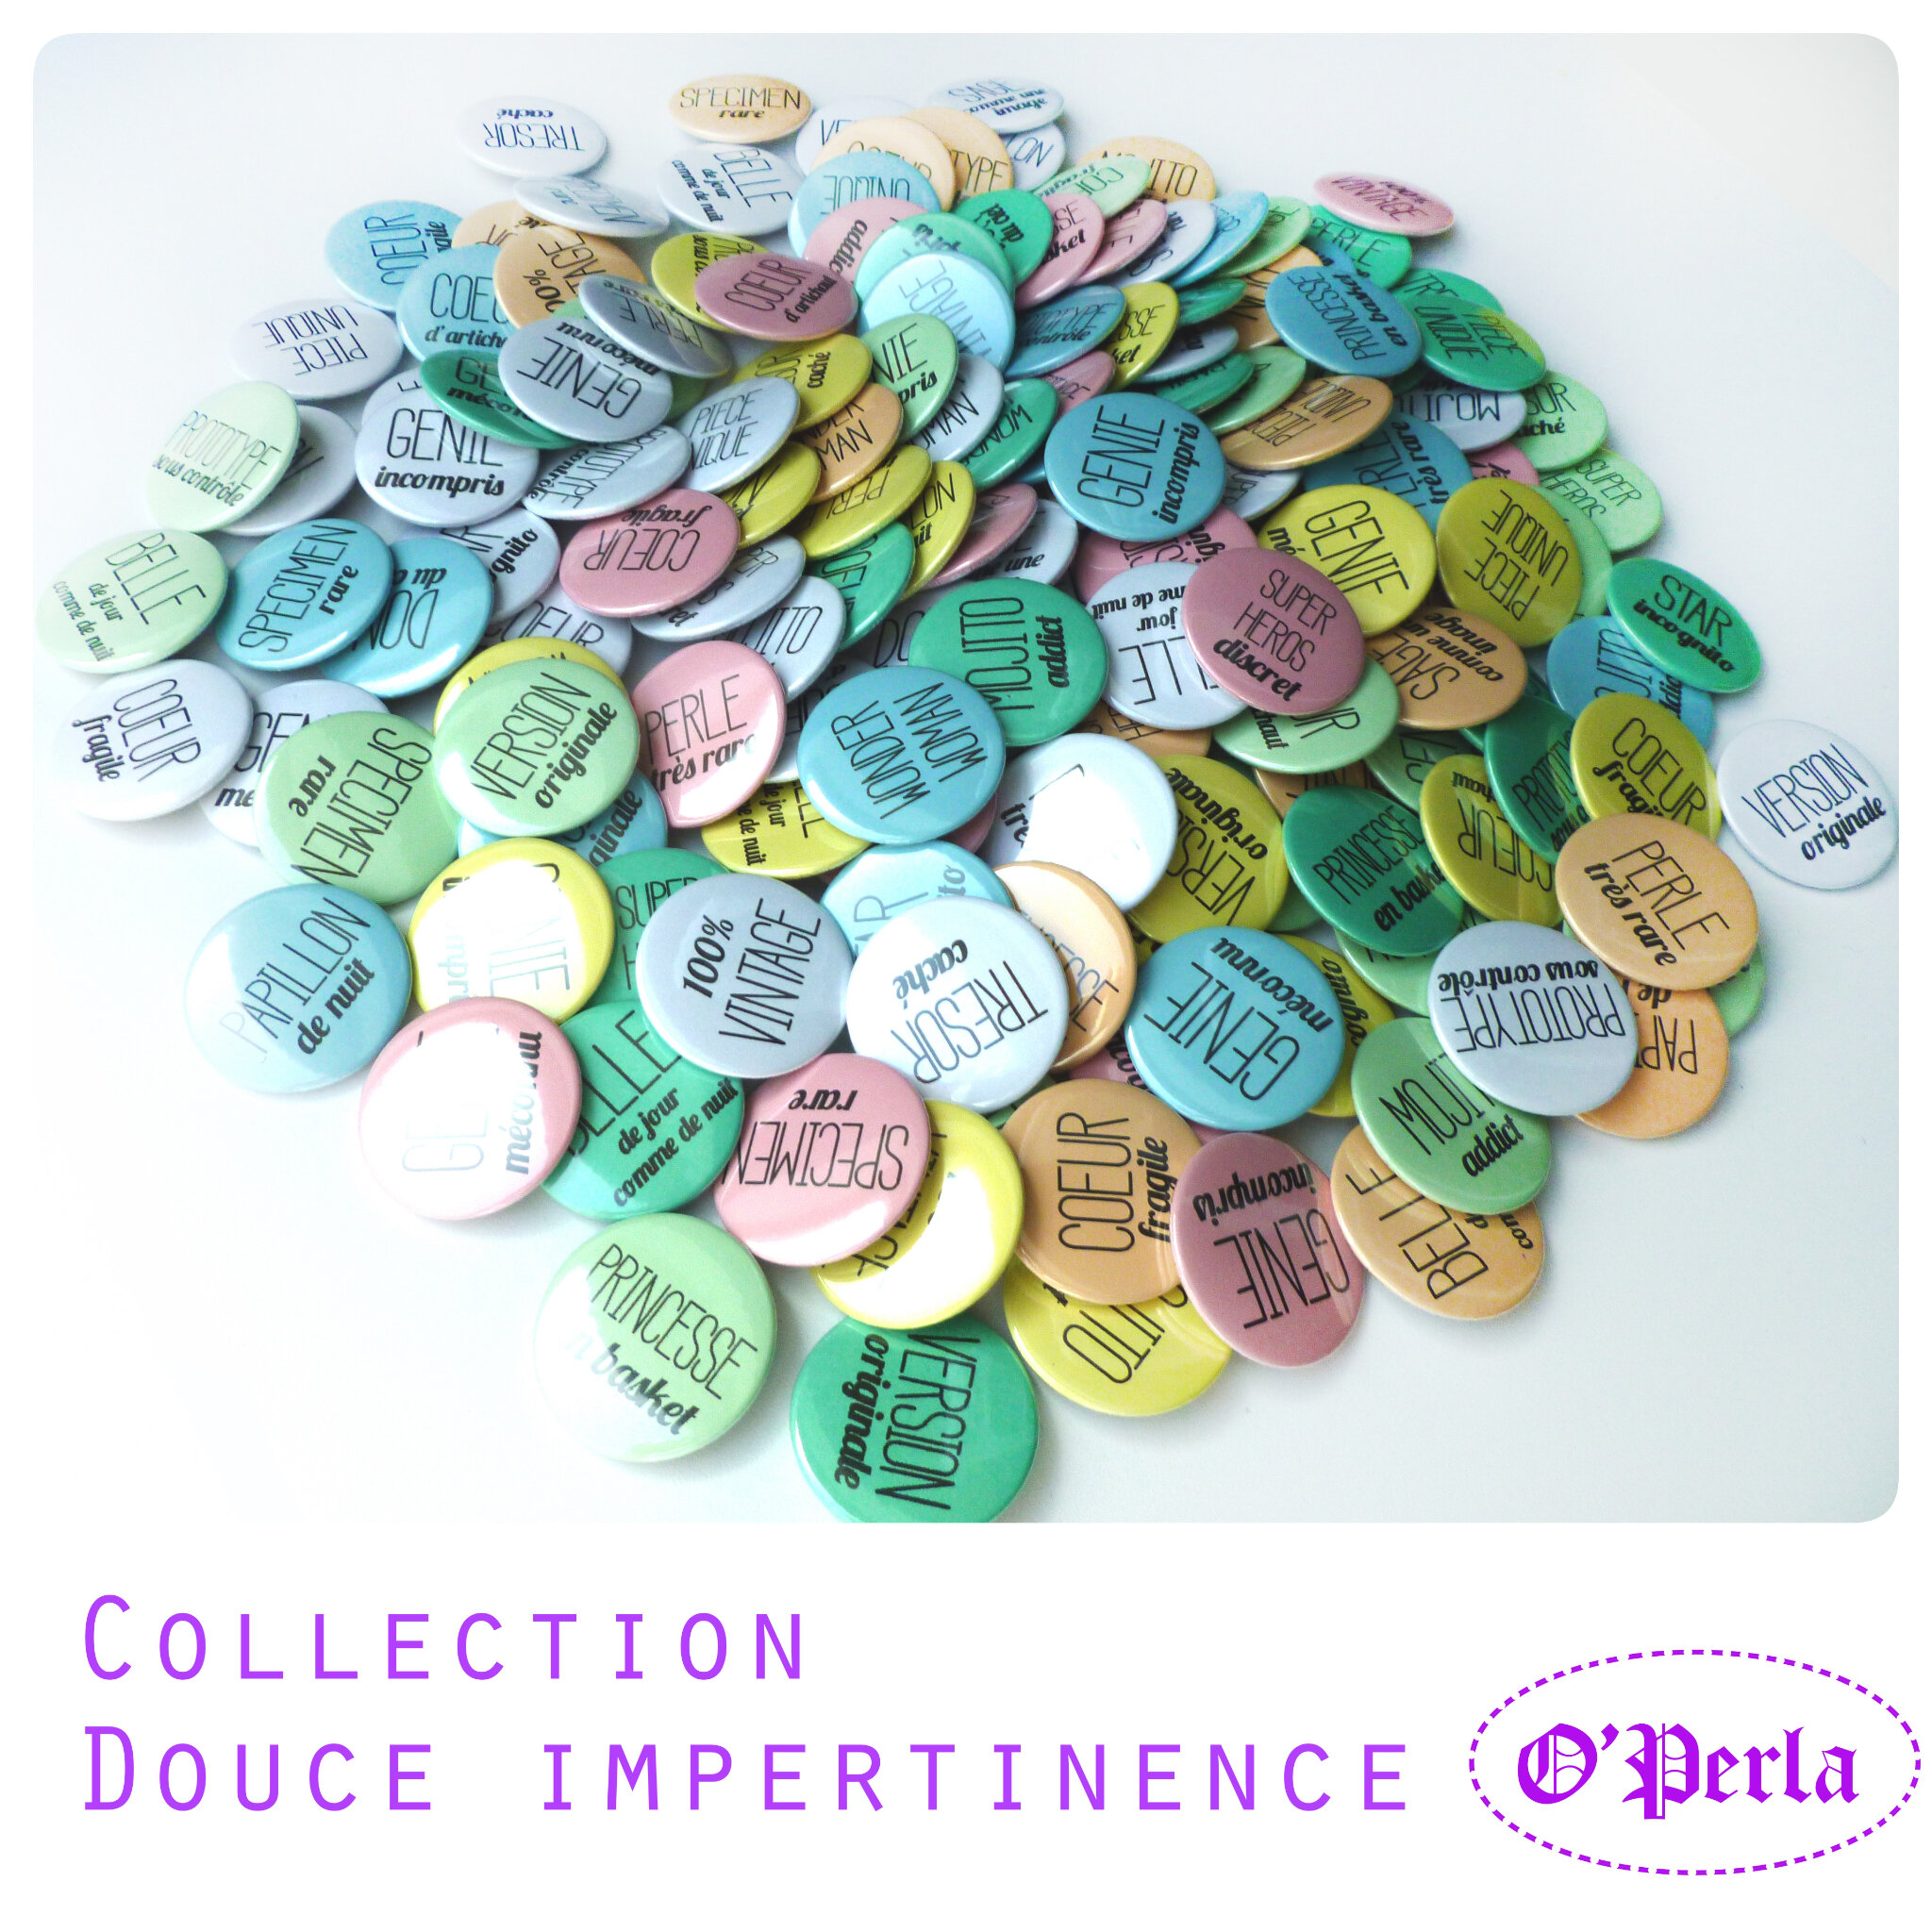 collageensDOUCEimpertinence - copie